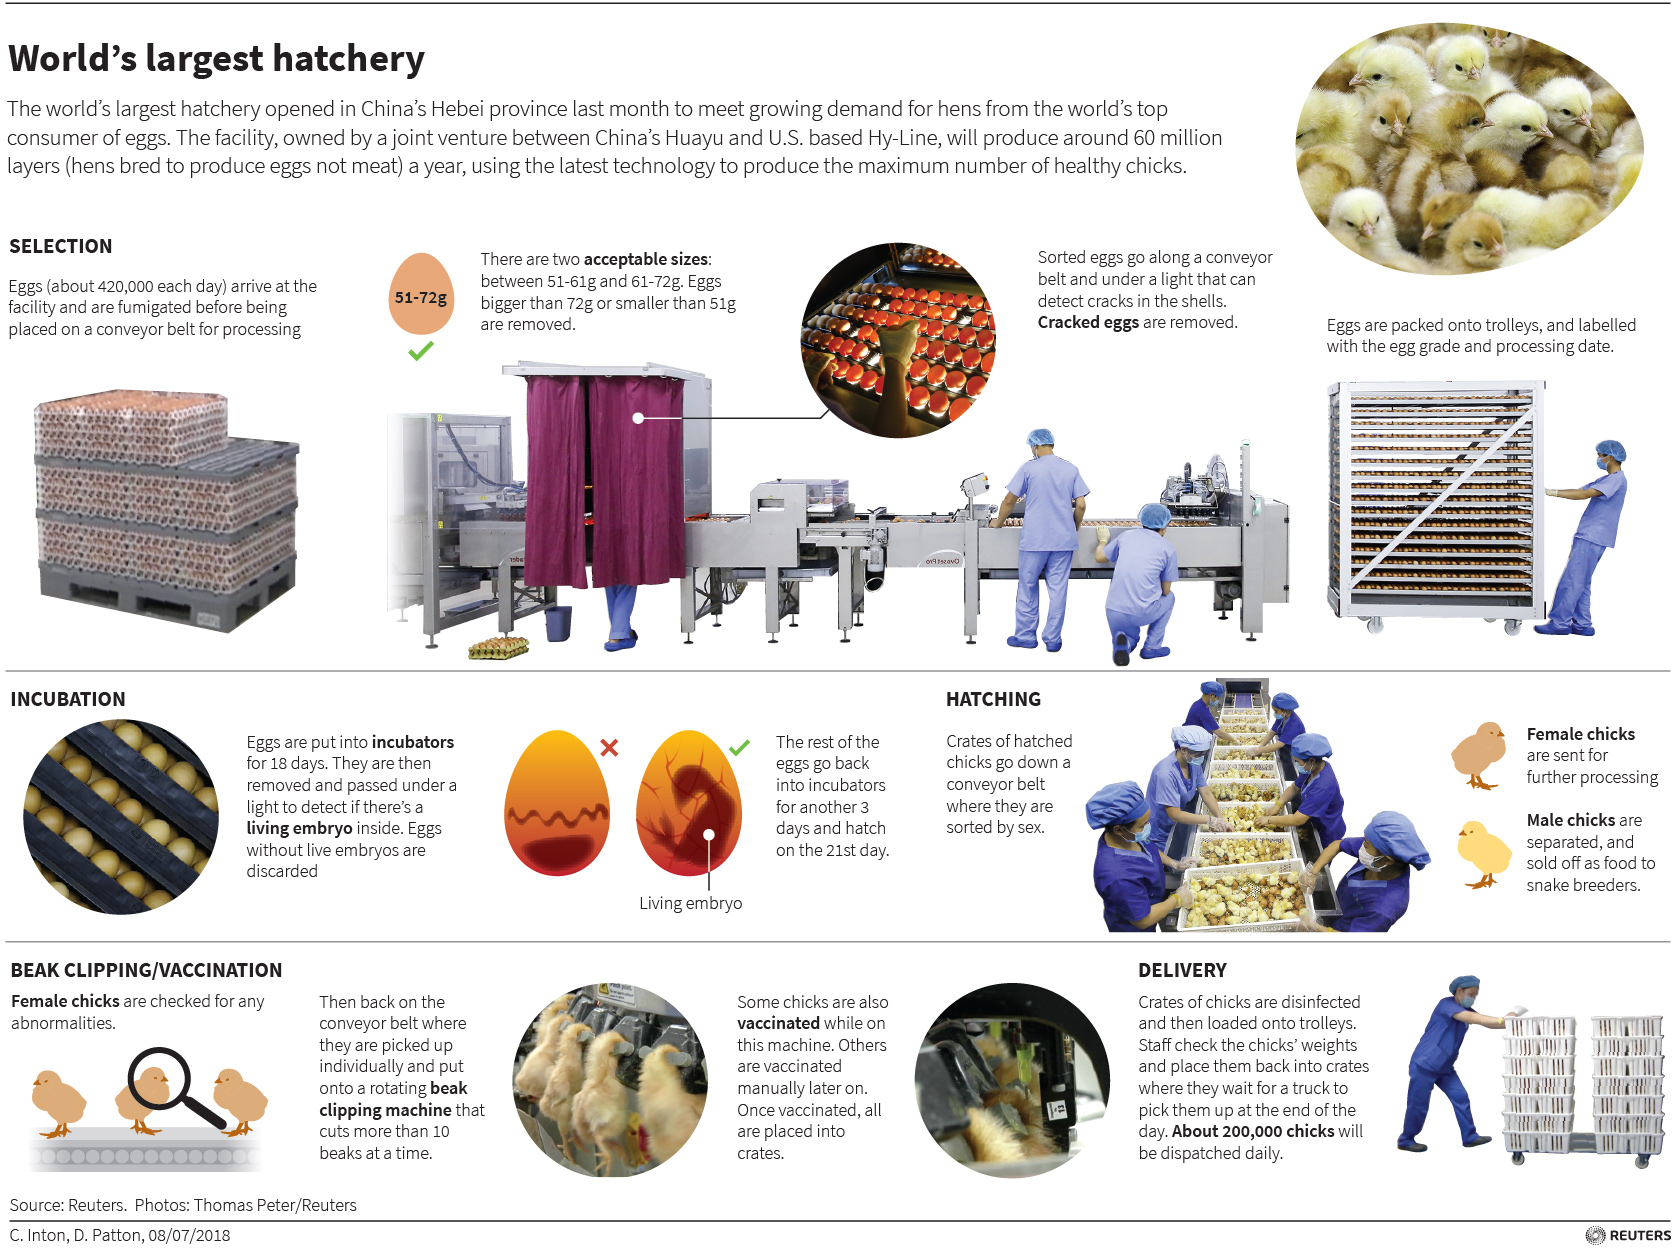 http://images.animanaturalis.org/posts/full/201808/P02-38475.jpg